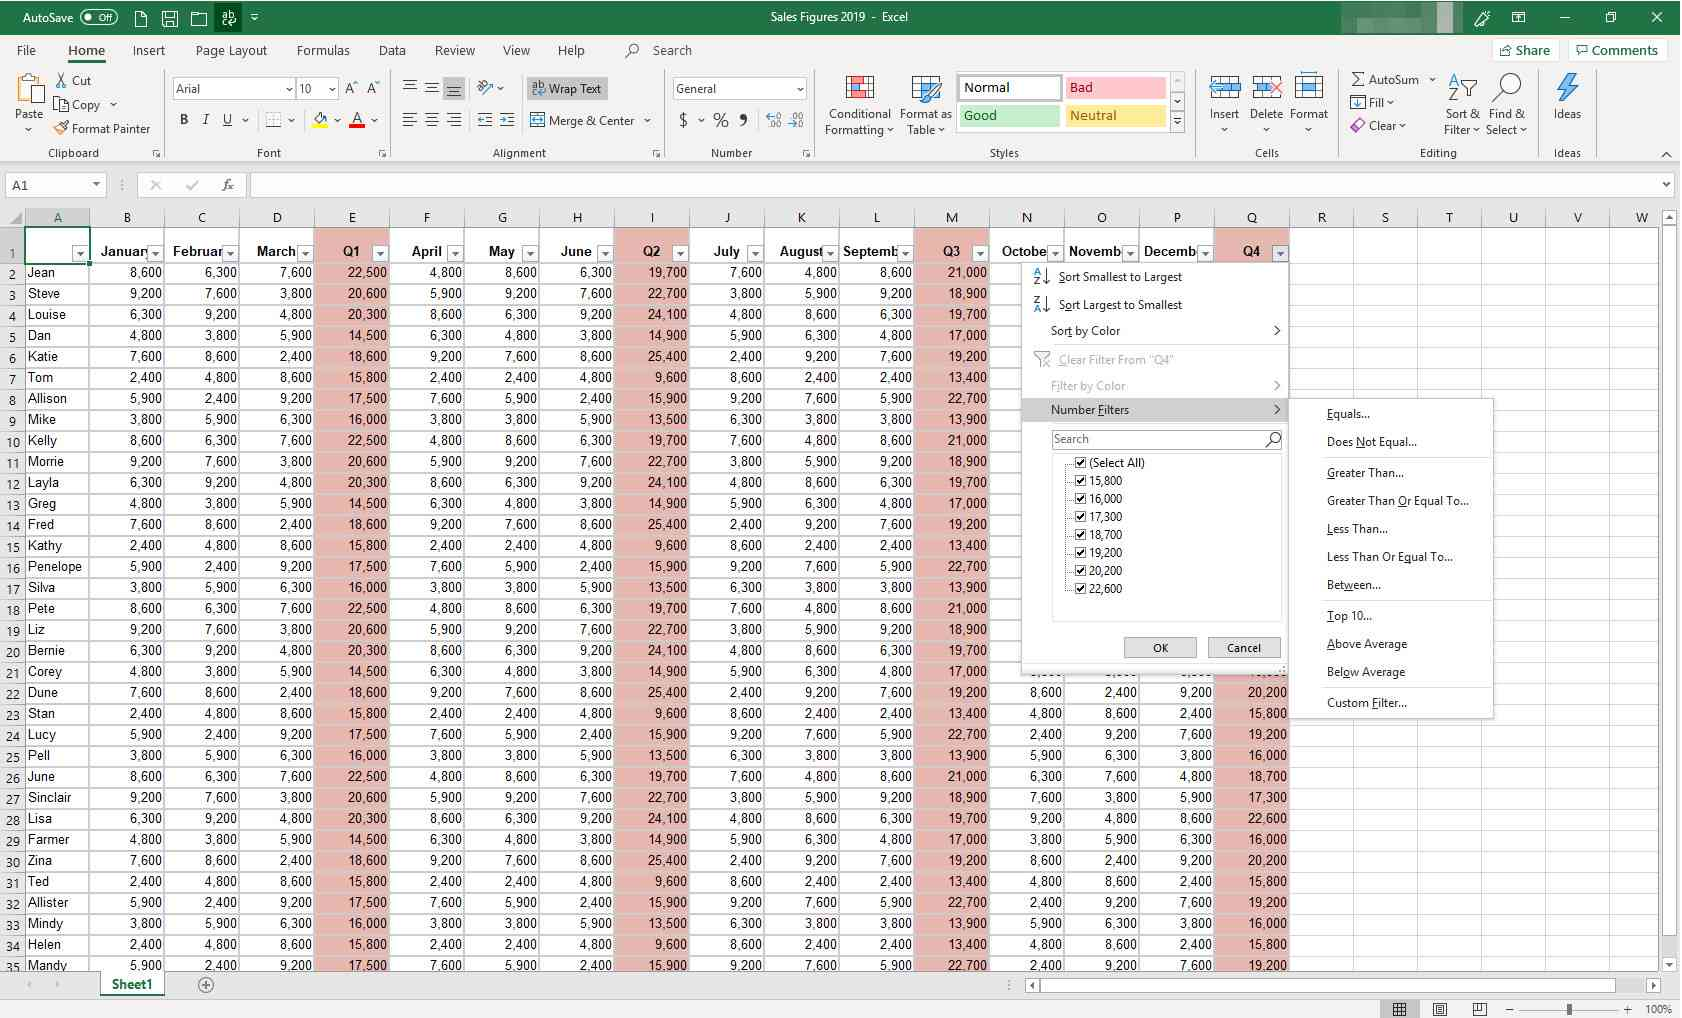 MS Excel with filters dialog box displayed